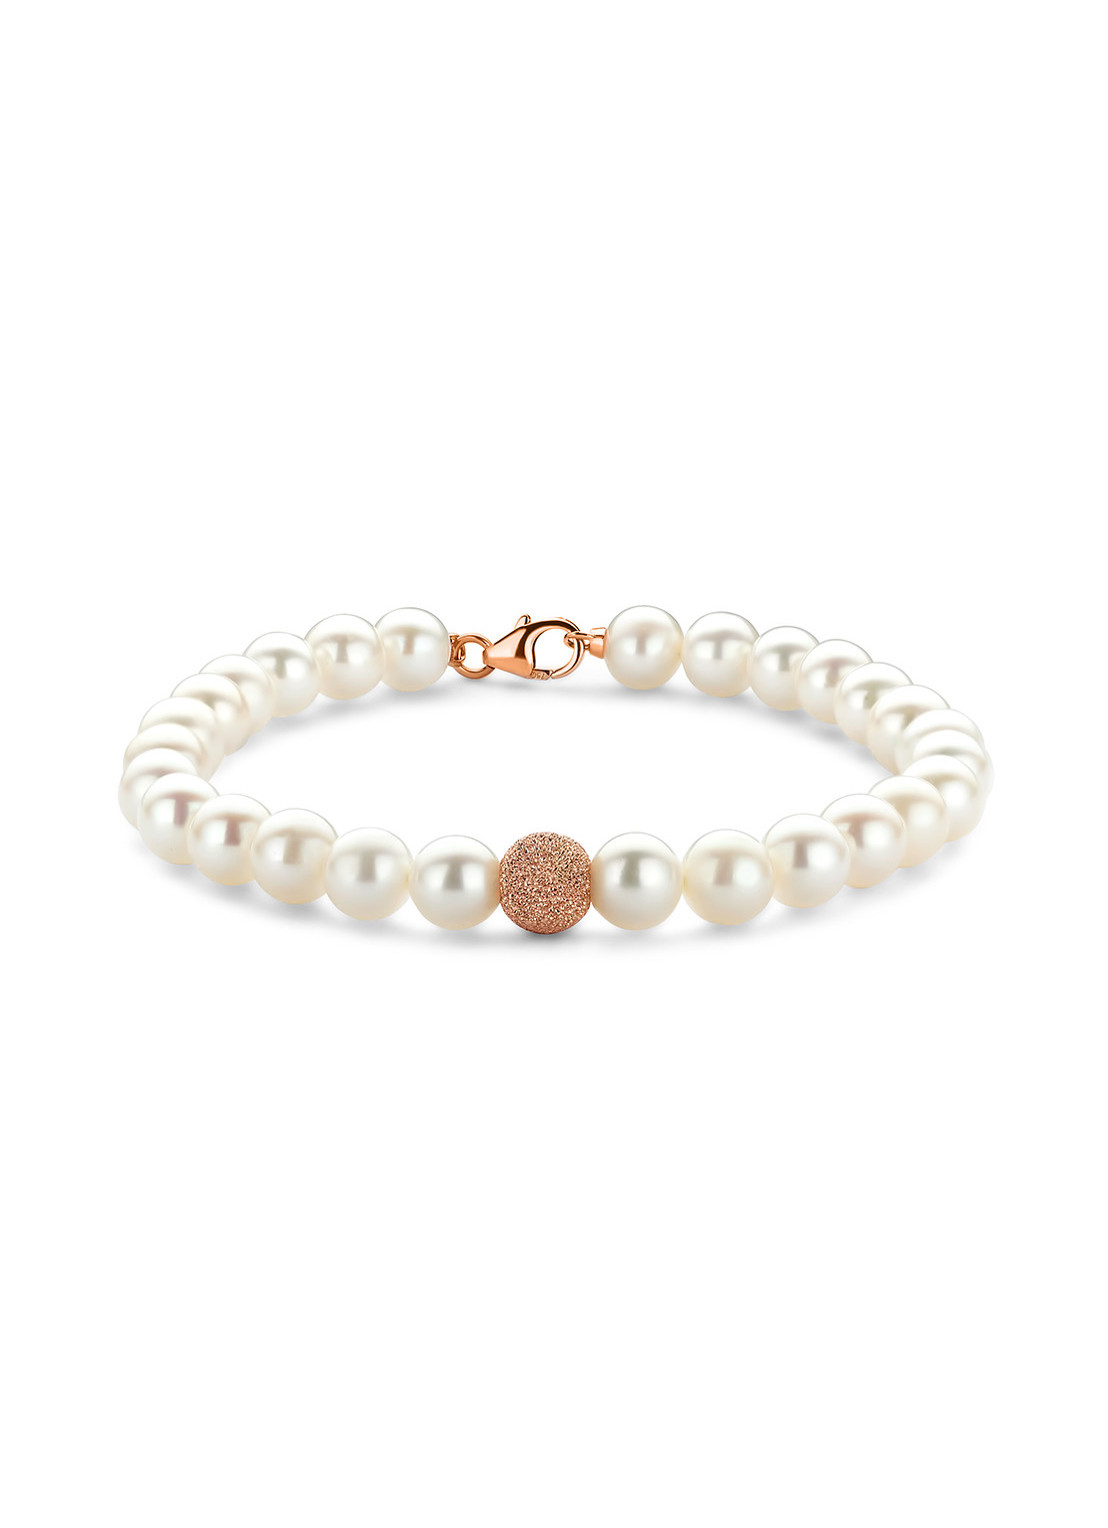 Diamond Point Rosegouden armband witte zoetwaterparel Riviera